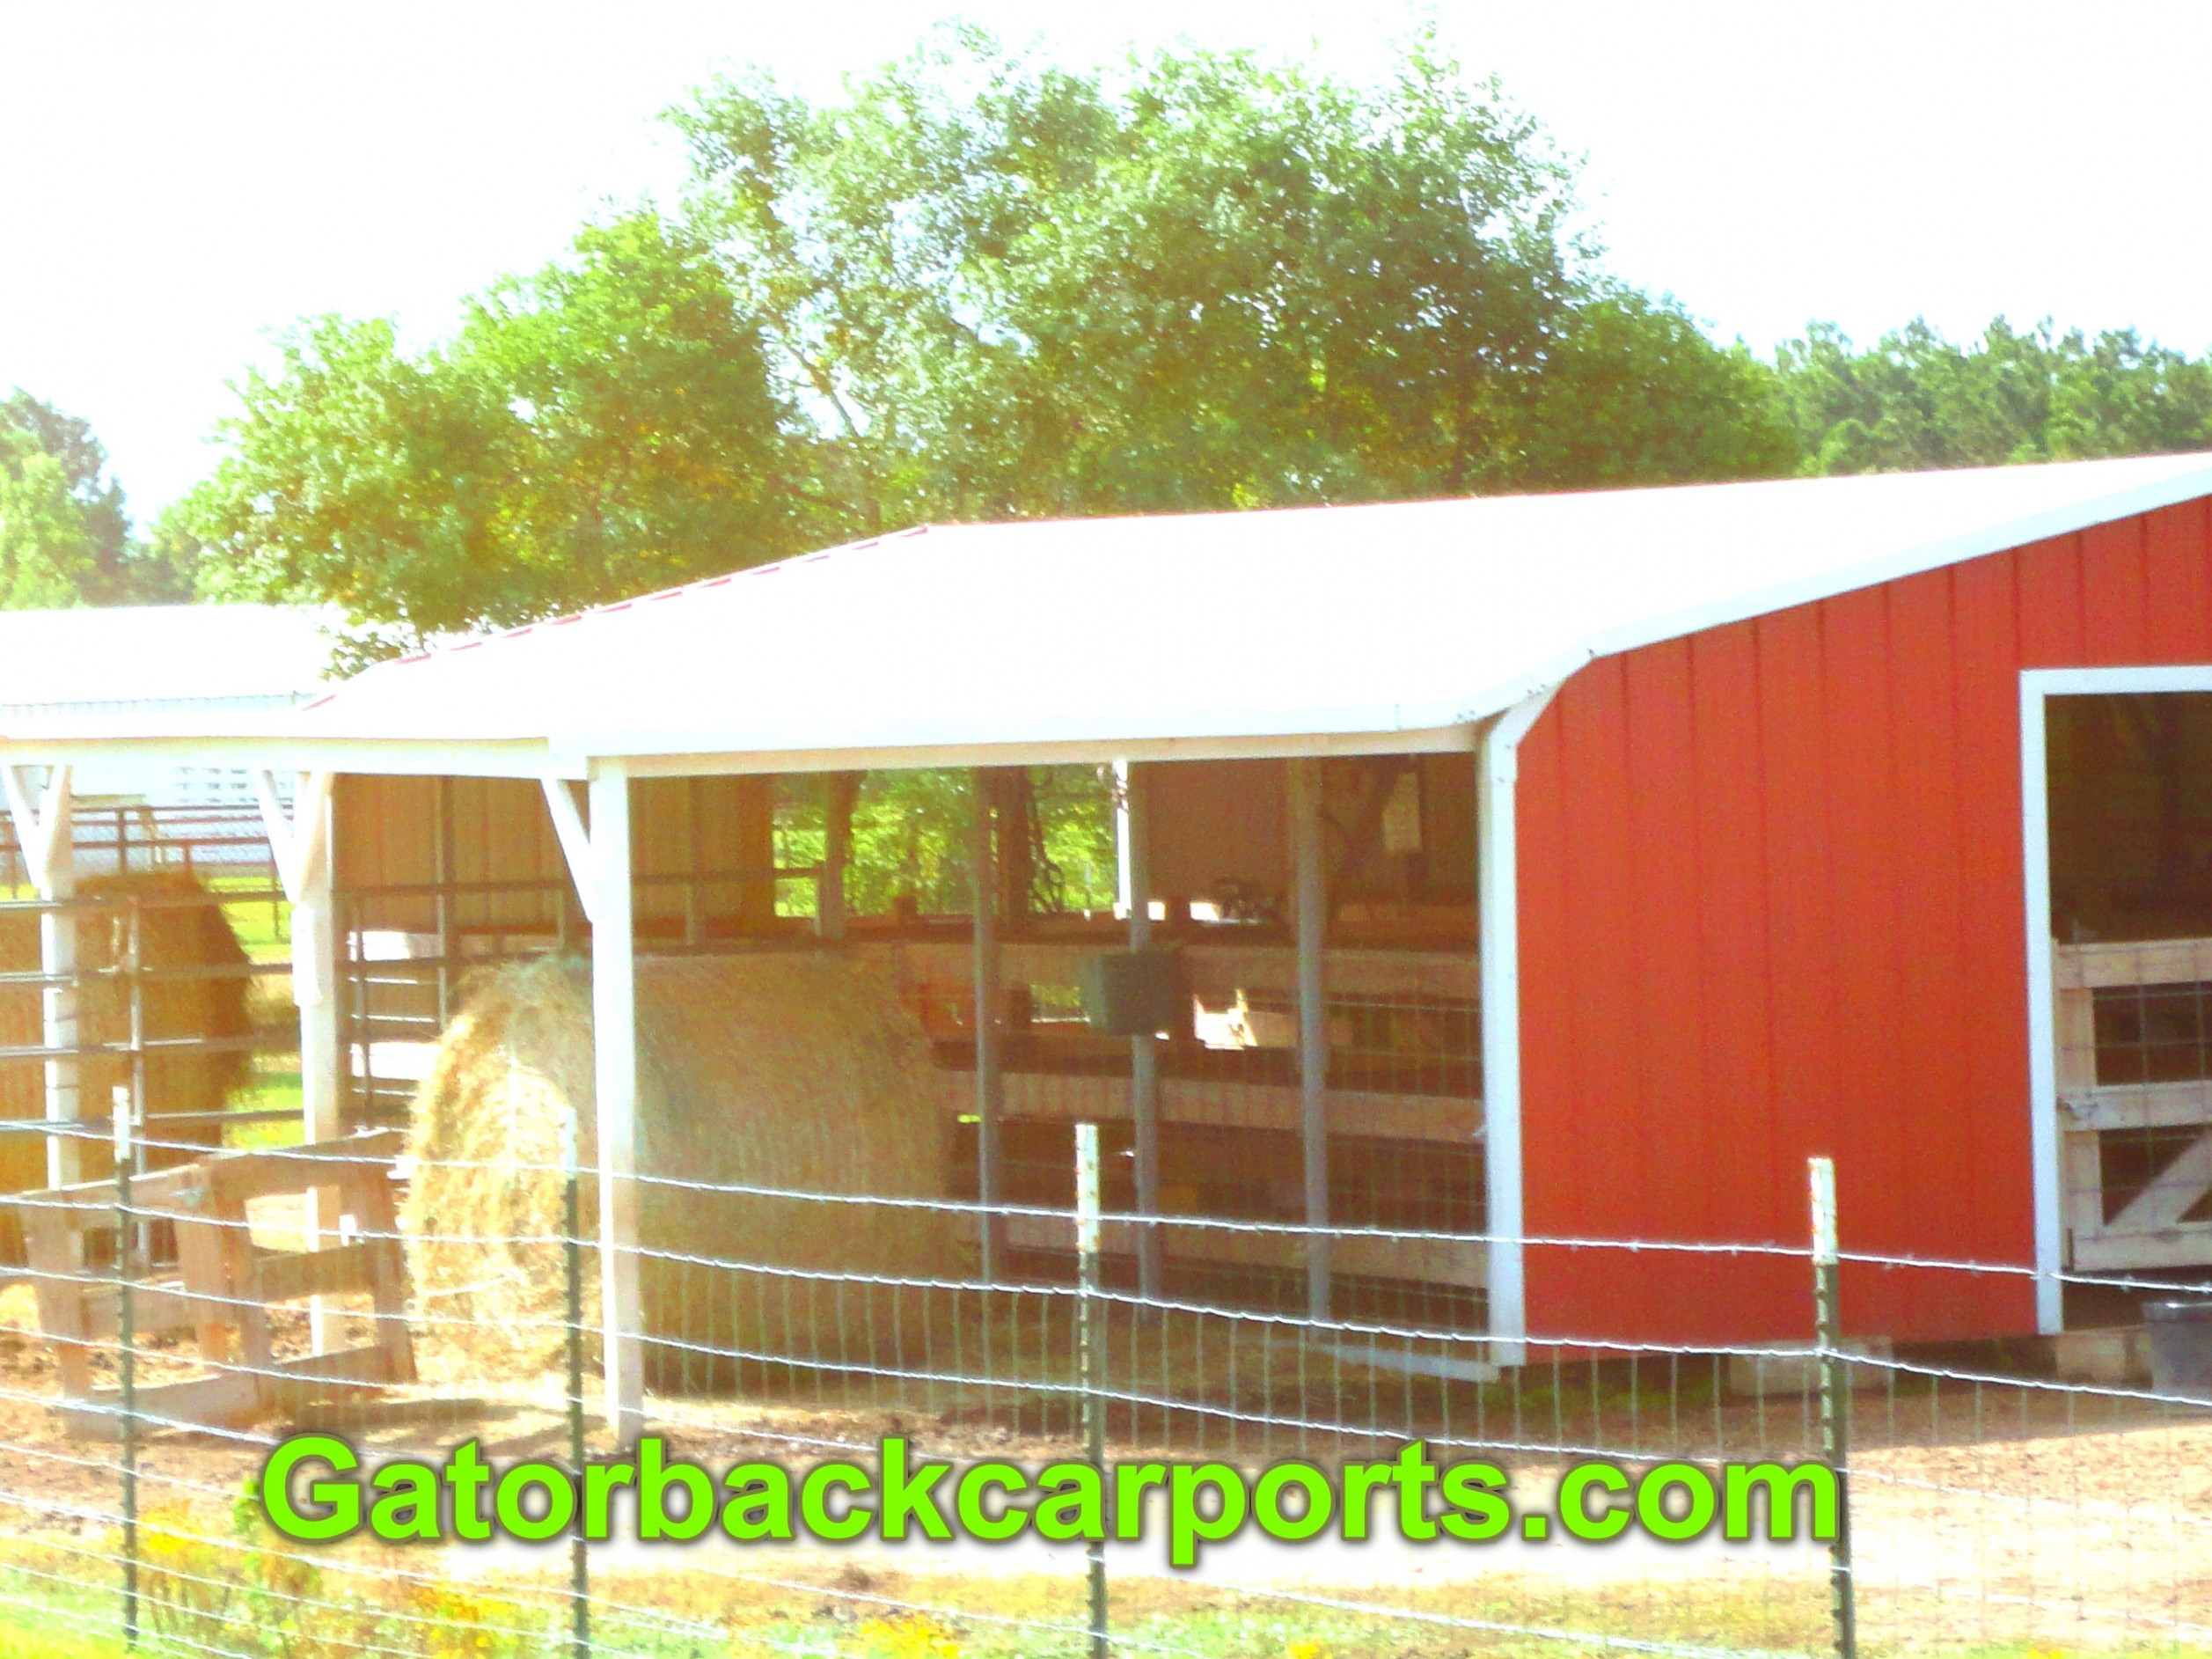 Convert A Cheap Carport Into A Barn Gatorback CarPorts Simple Carport Ideas